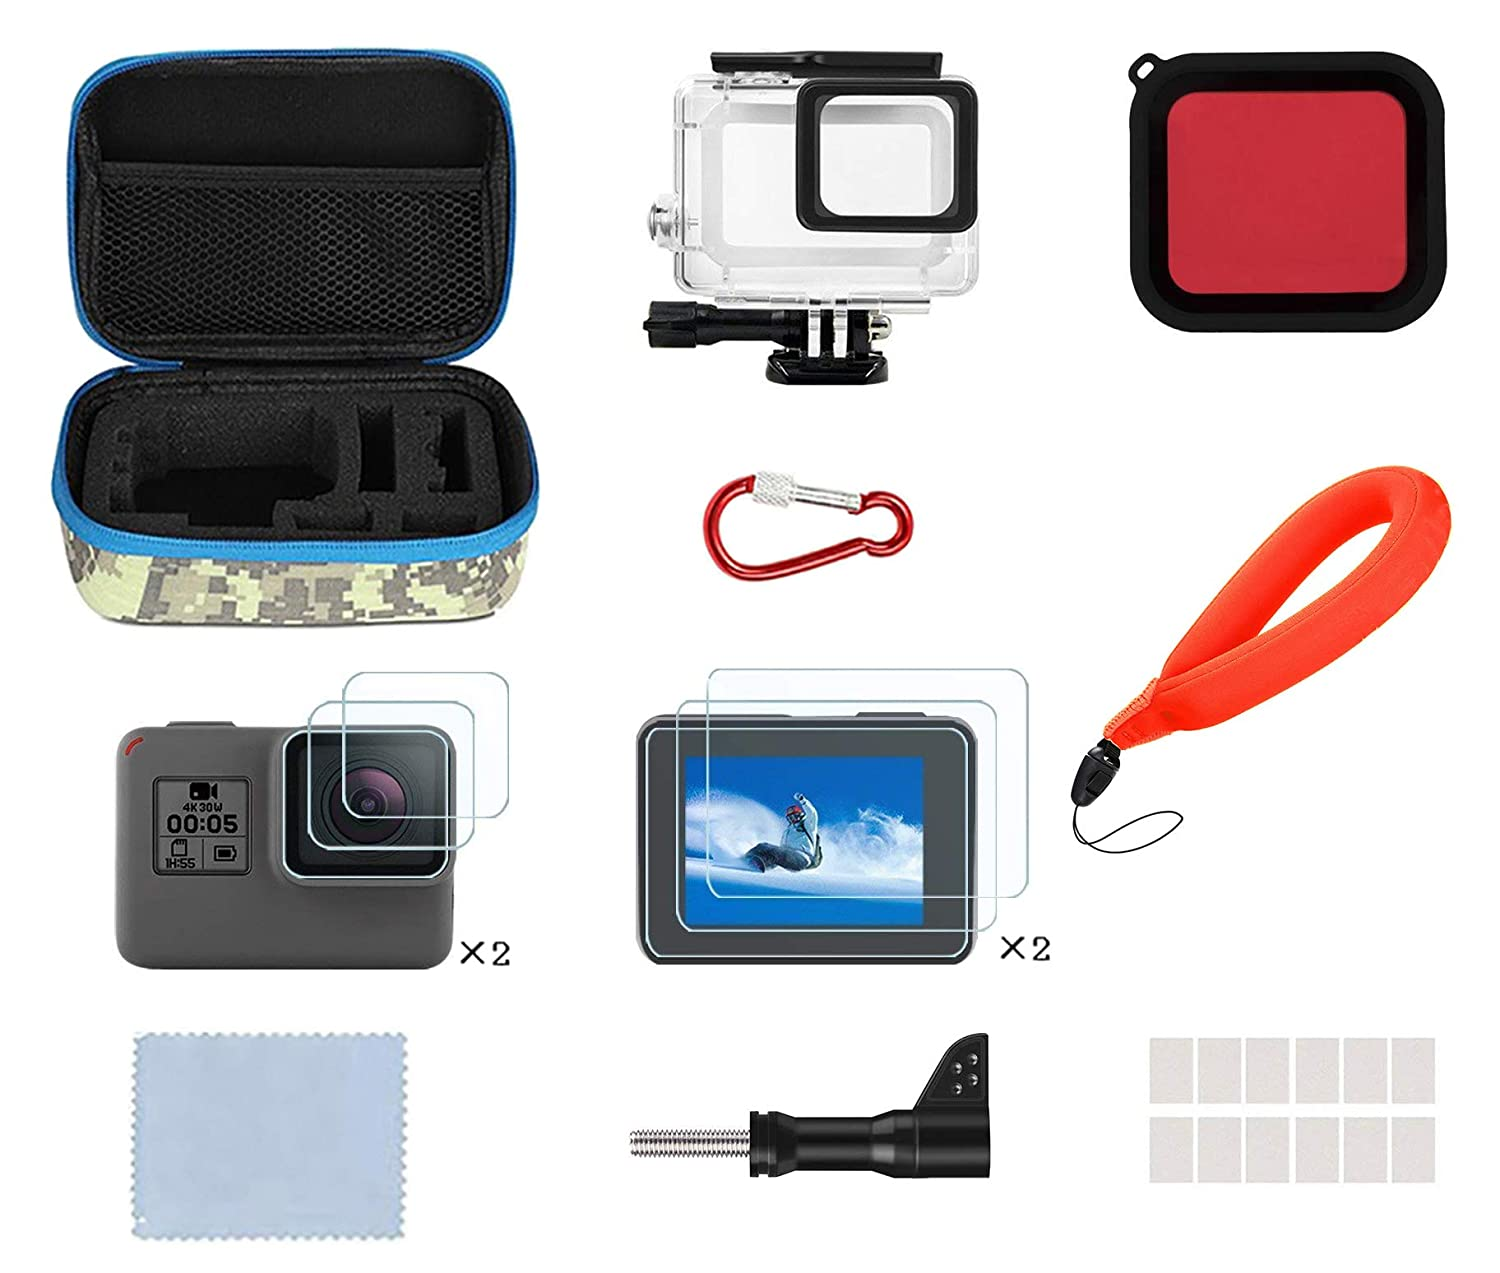 Lowpter Accessories Kit GoPro Hero 7/(2018)/6/5, Including Waterproof Housing Case + Waterproof Camera Float + Portable Small Carrying Case + Red Filter + Anti-Fog Inserts + Tempered Film dong wan shi zhi xuan che feng yong pin you xian gong si